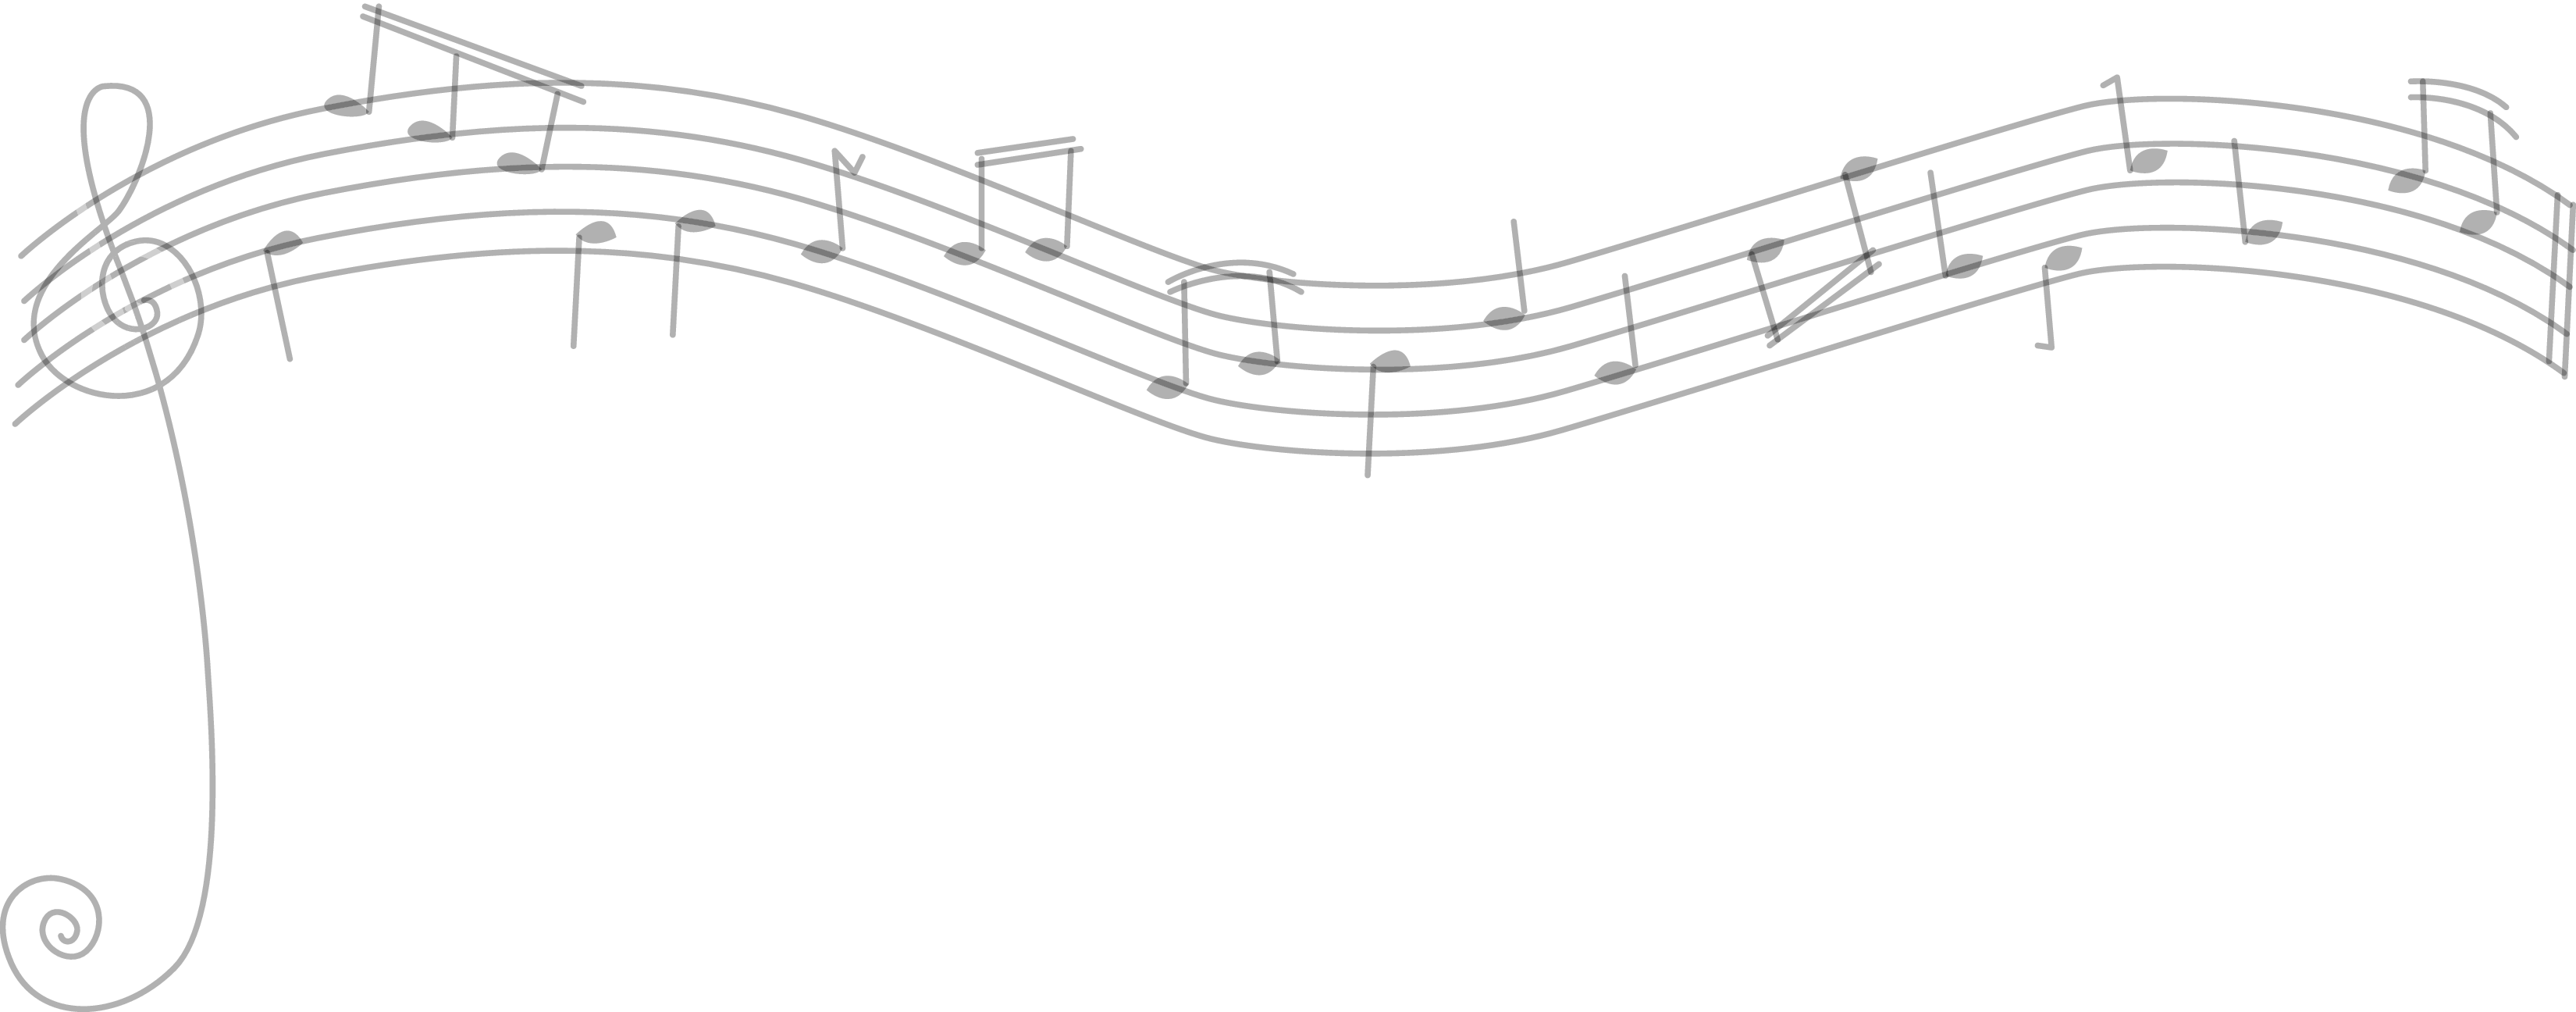 Staff music notes png. Musical on divider east